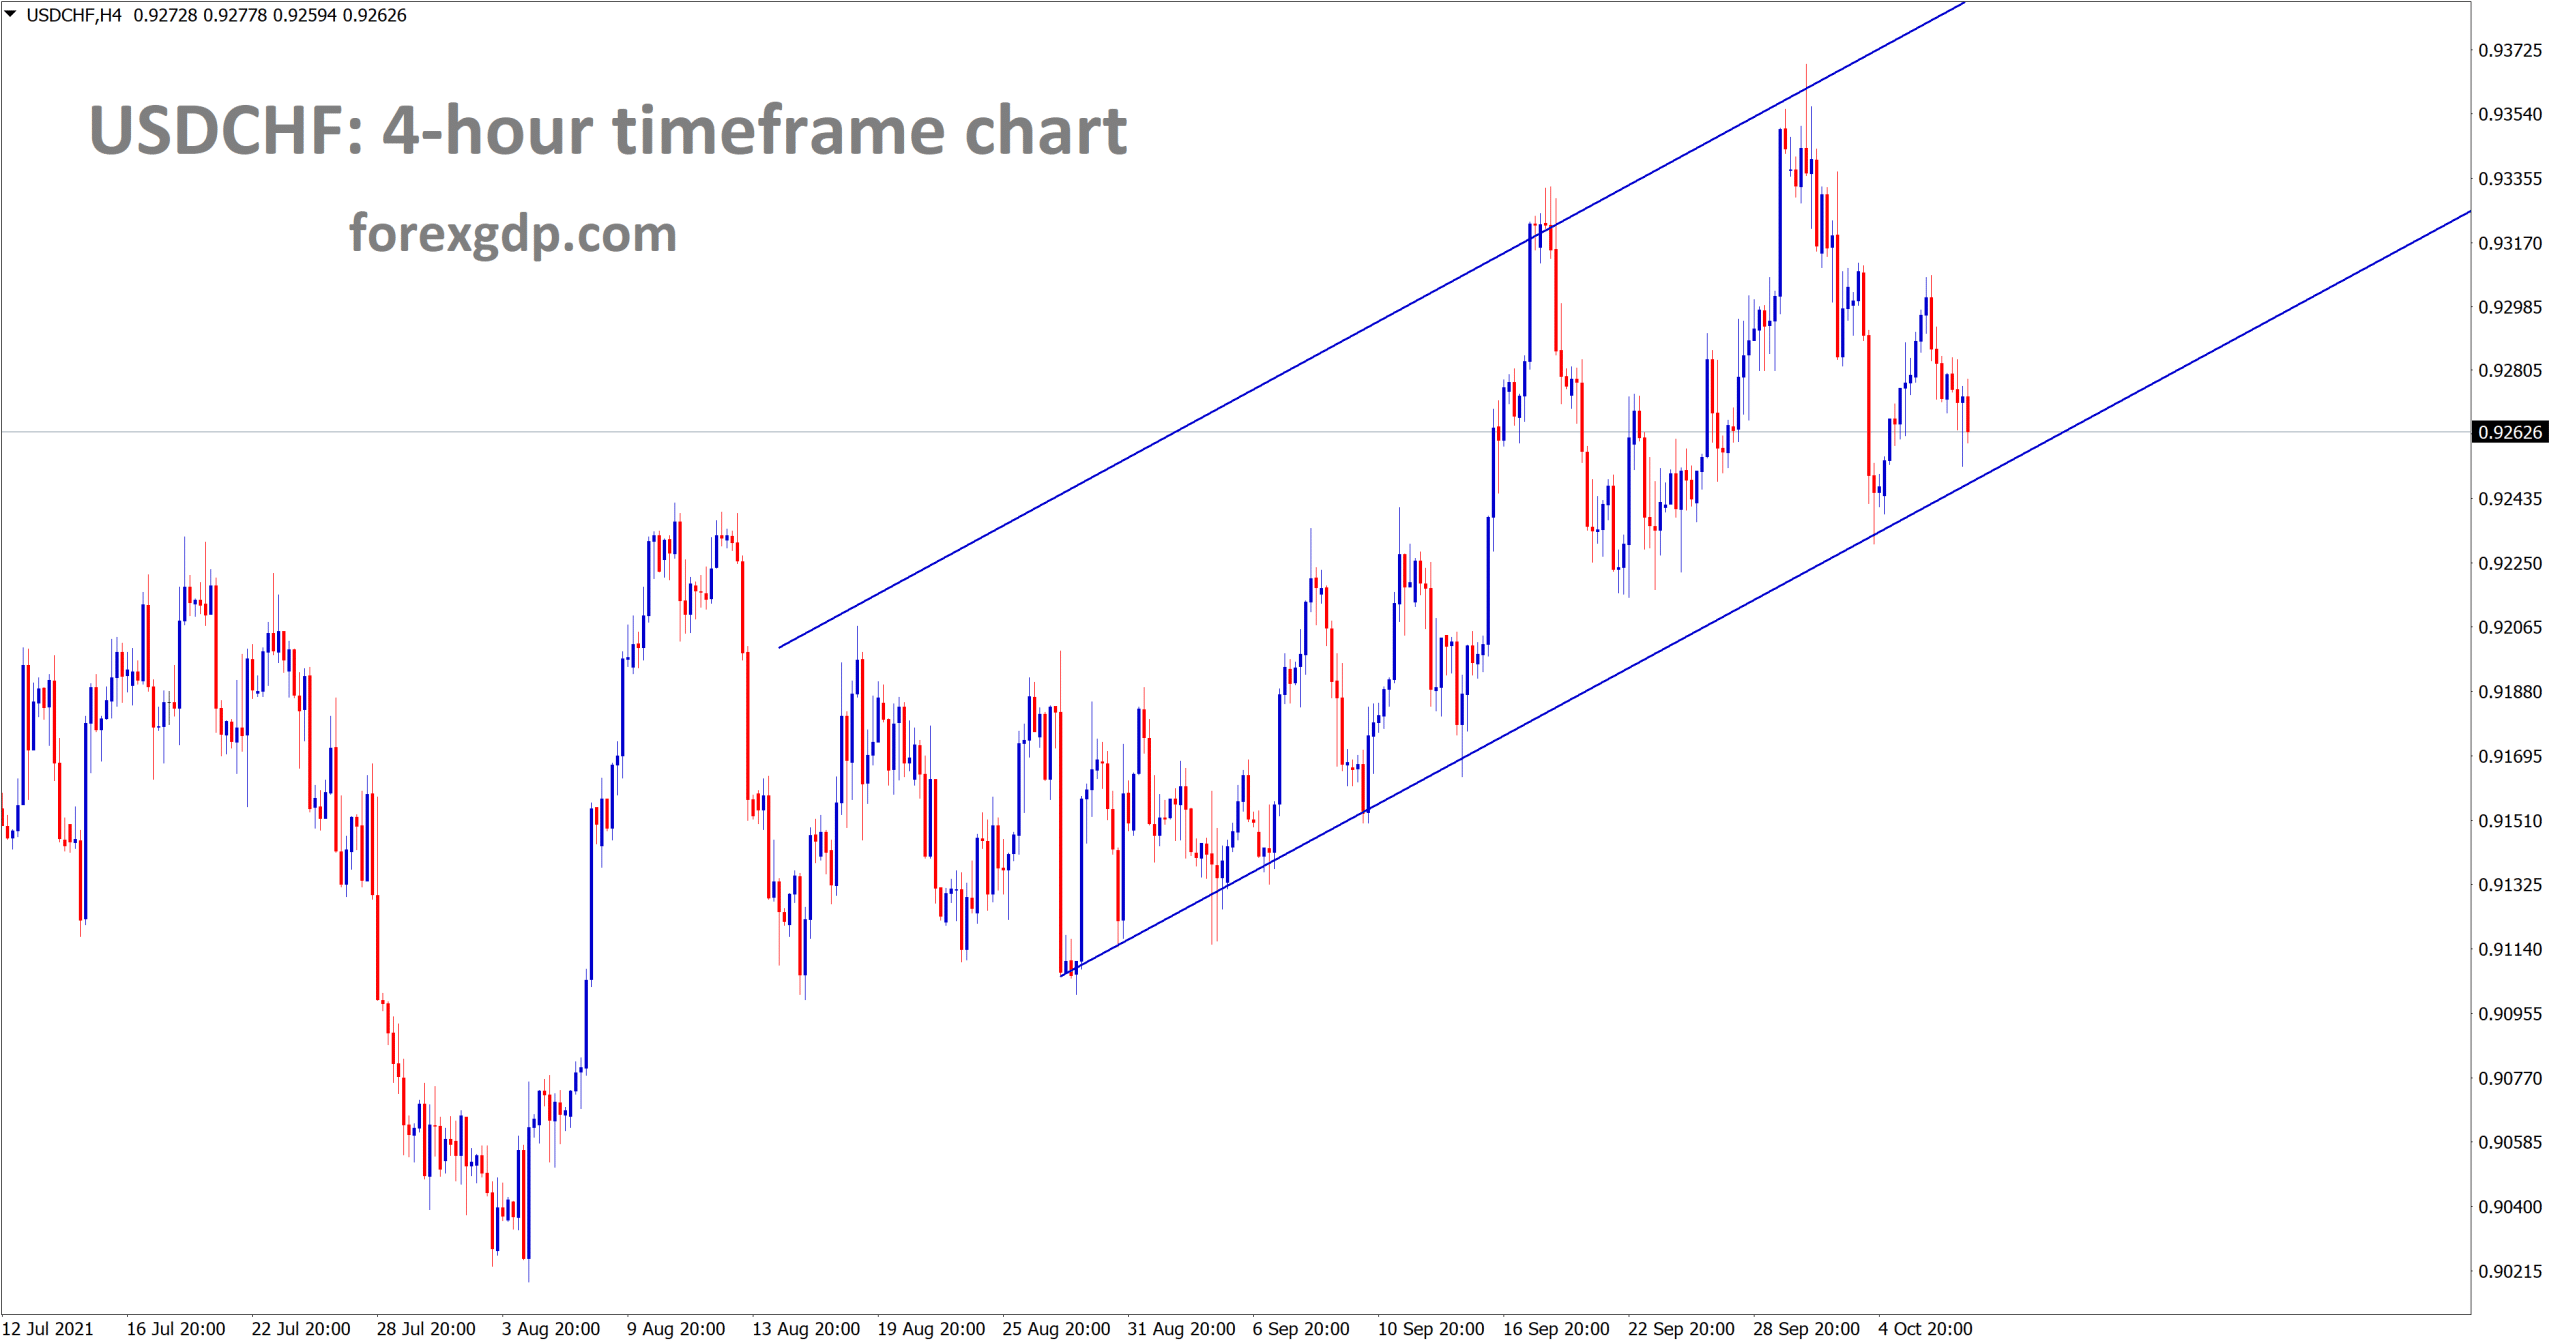 USDCHF is moving in an Ascending channel